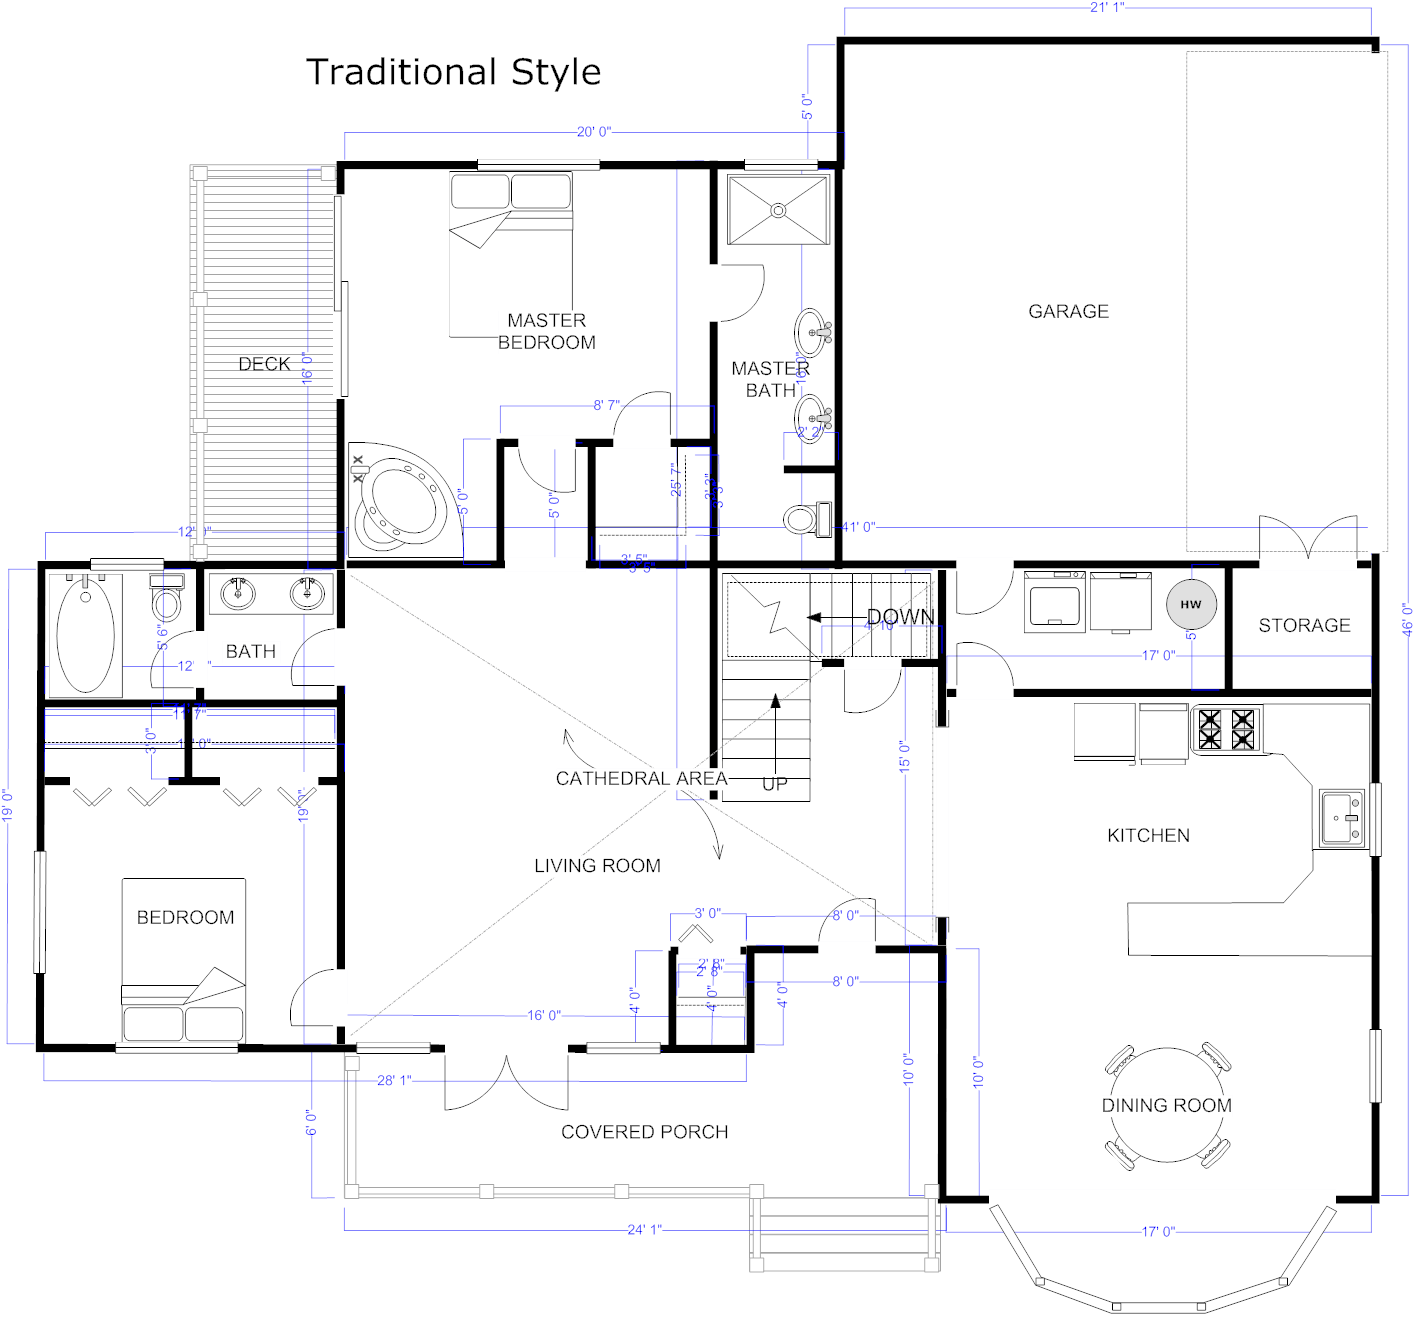 Floor Plan Maker Draw Floor Plans With Floor Plan Templates: online floor plan maker